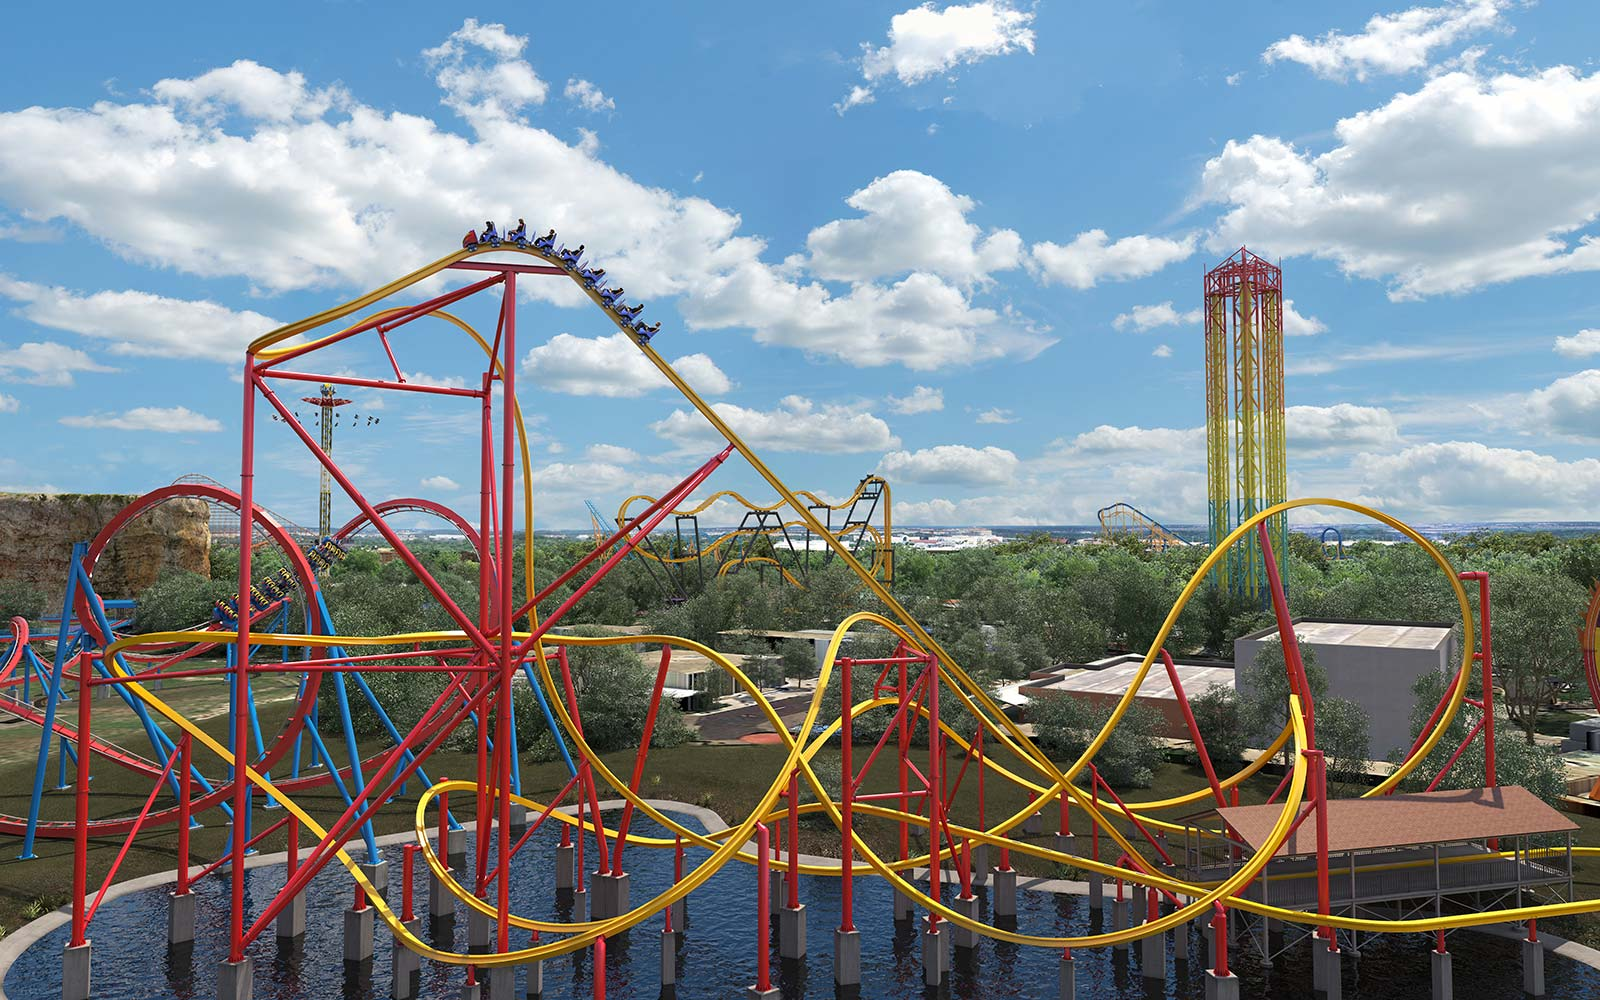 The New 'Wonder Woman' Roller Coaster Looks Completely Amazing